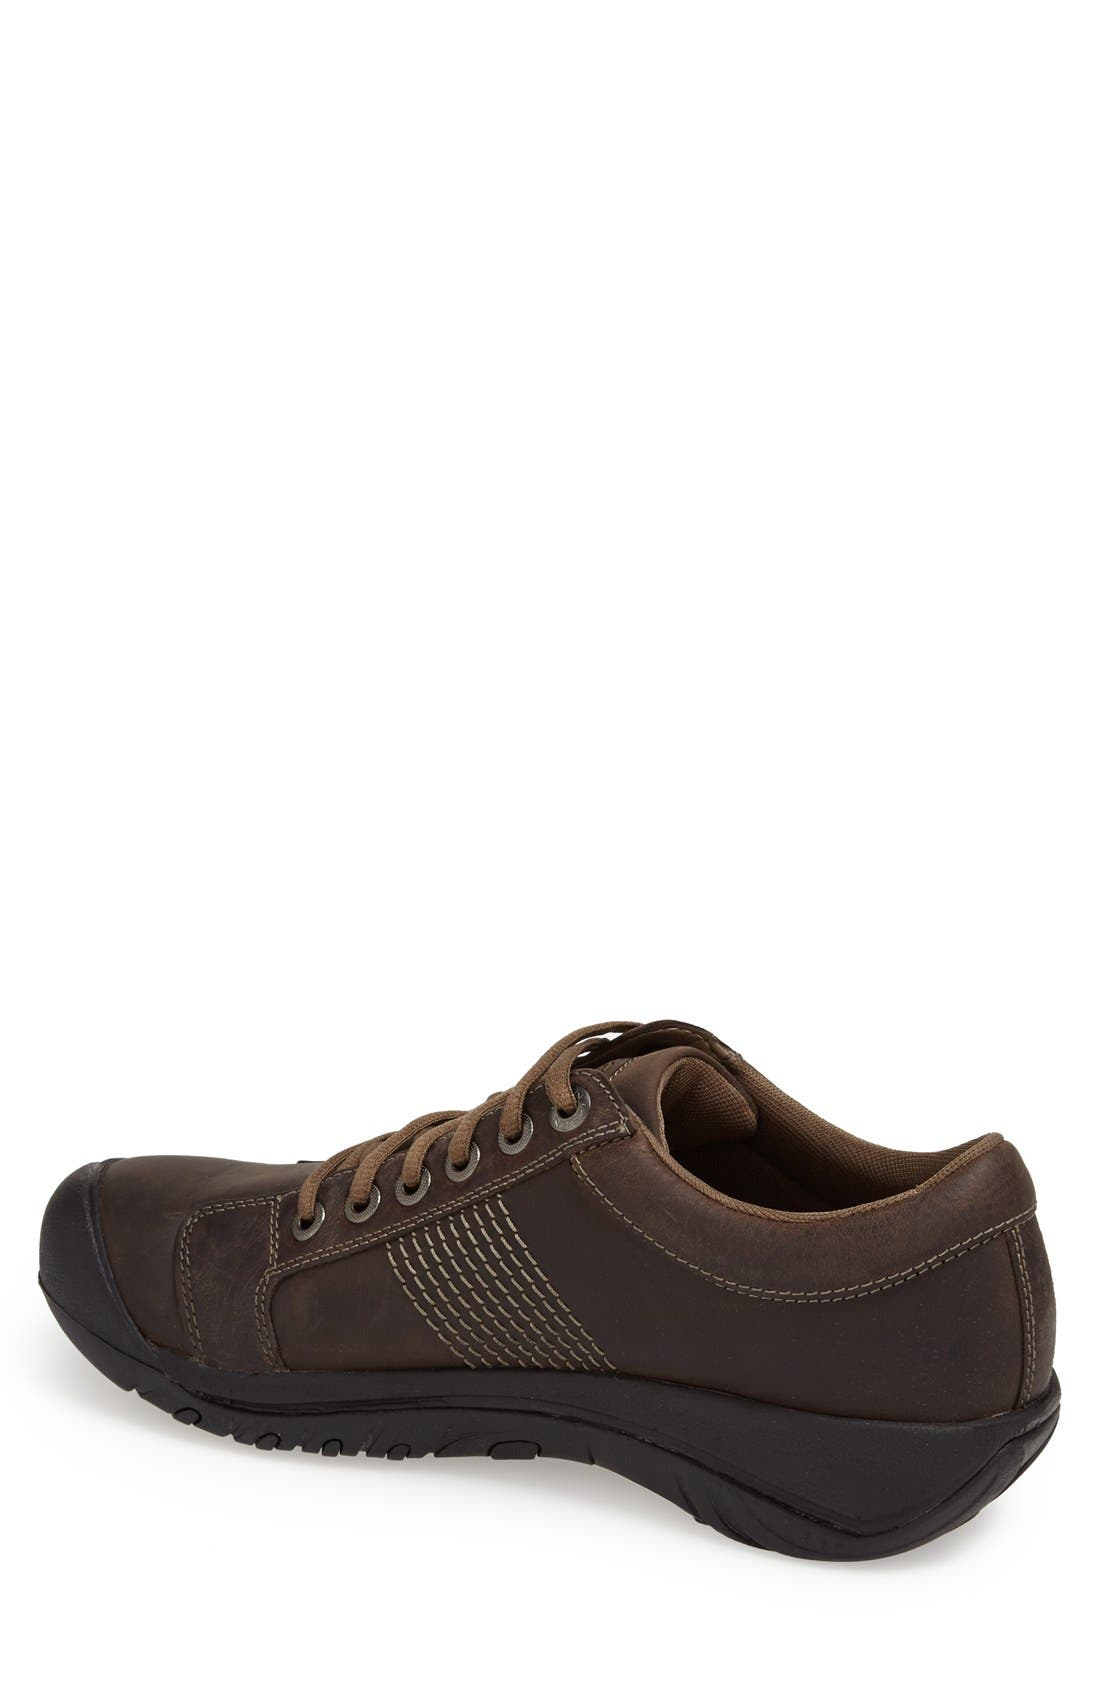 'Austin' Sneaker,                             Alternate thumbnail 2, color,                             CHOCOLATE BROWN